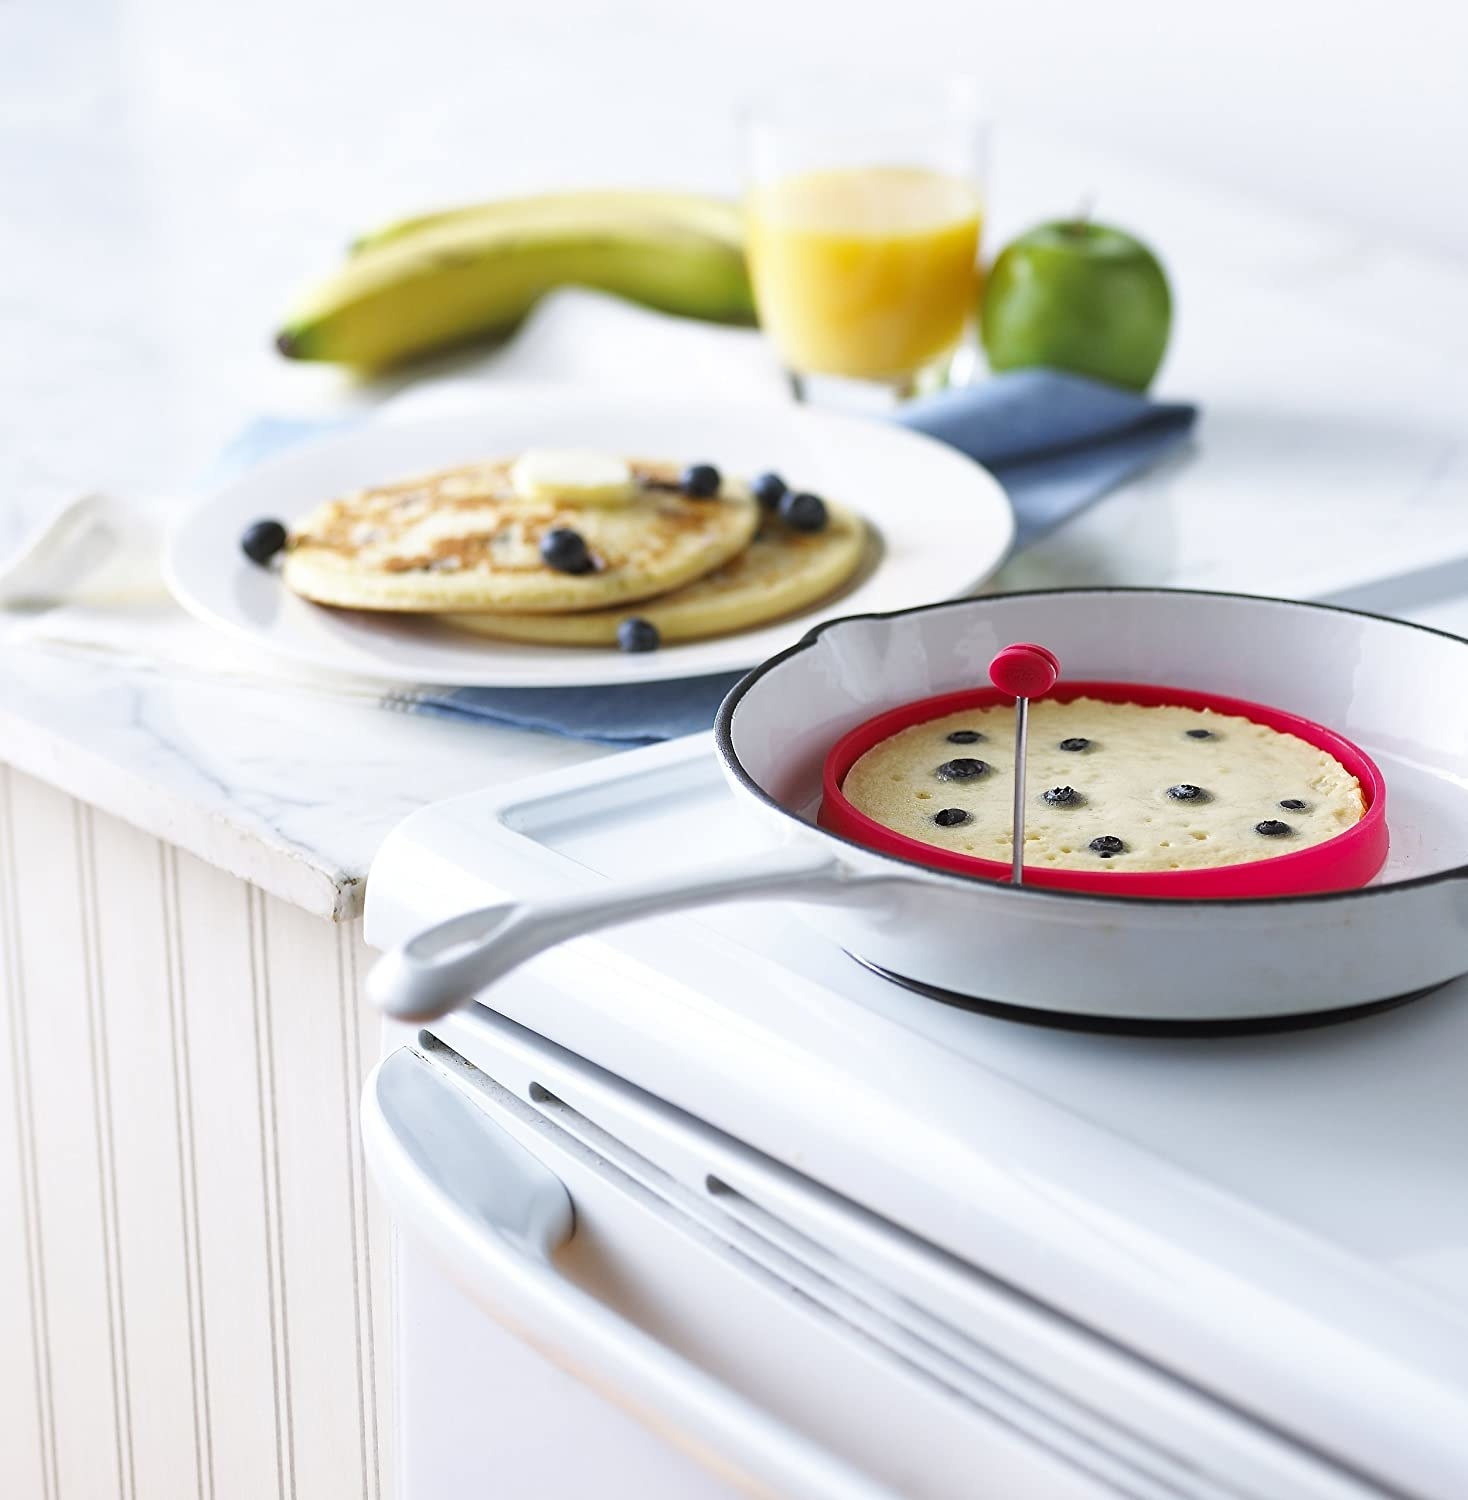 A pancake ring has batter in it in a pan on a stove